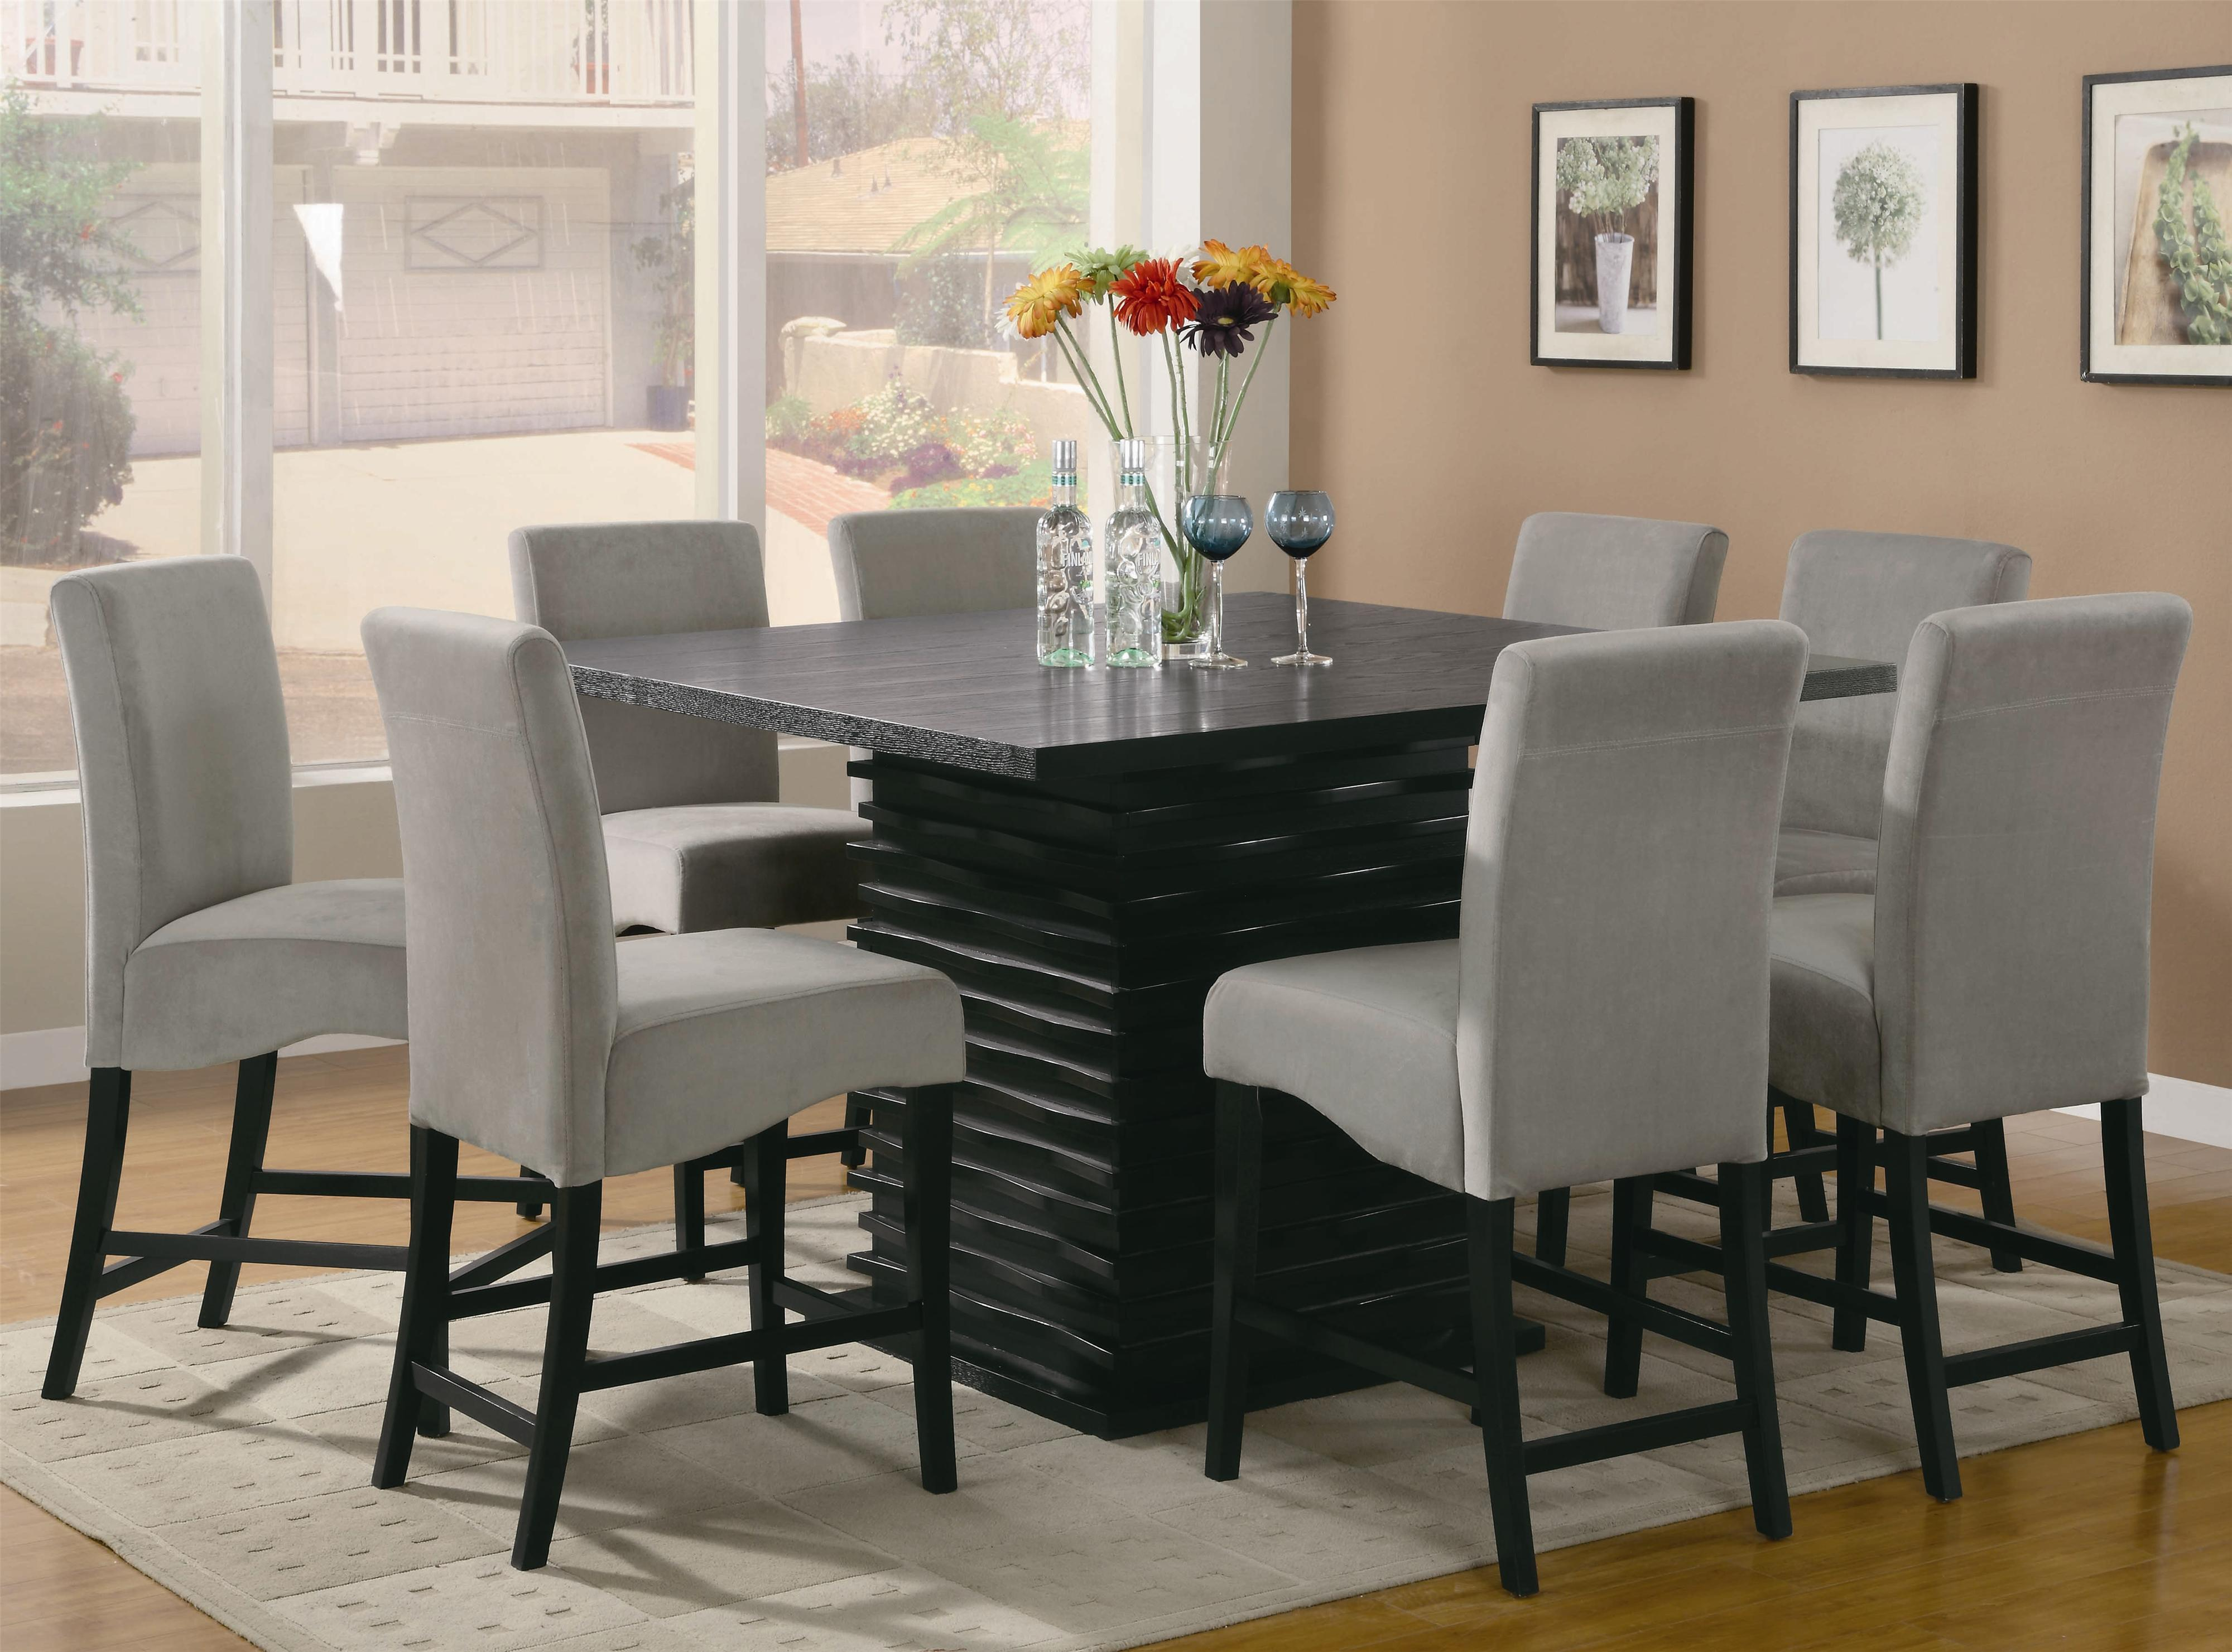 sports shoes ddb1e 9d30c Black Wave Counter Height Dining Table and Chair Set